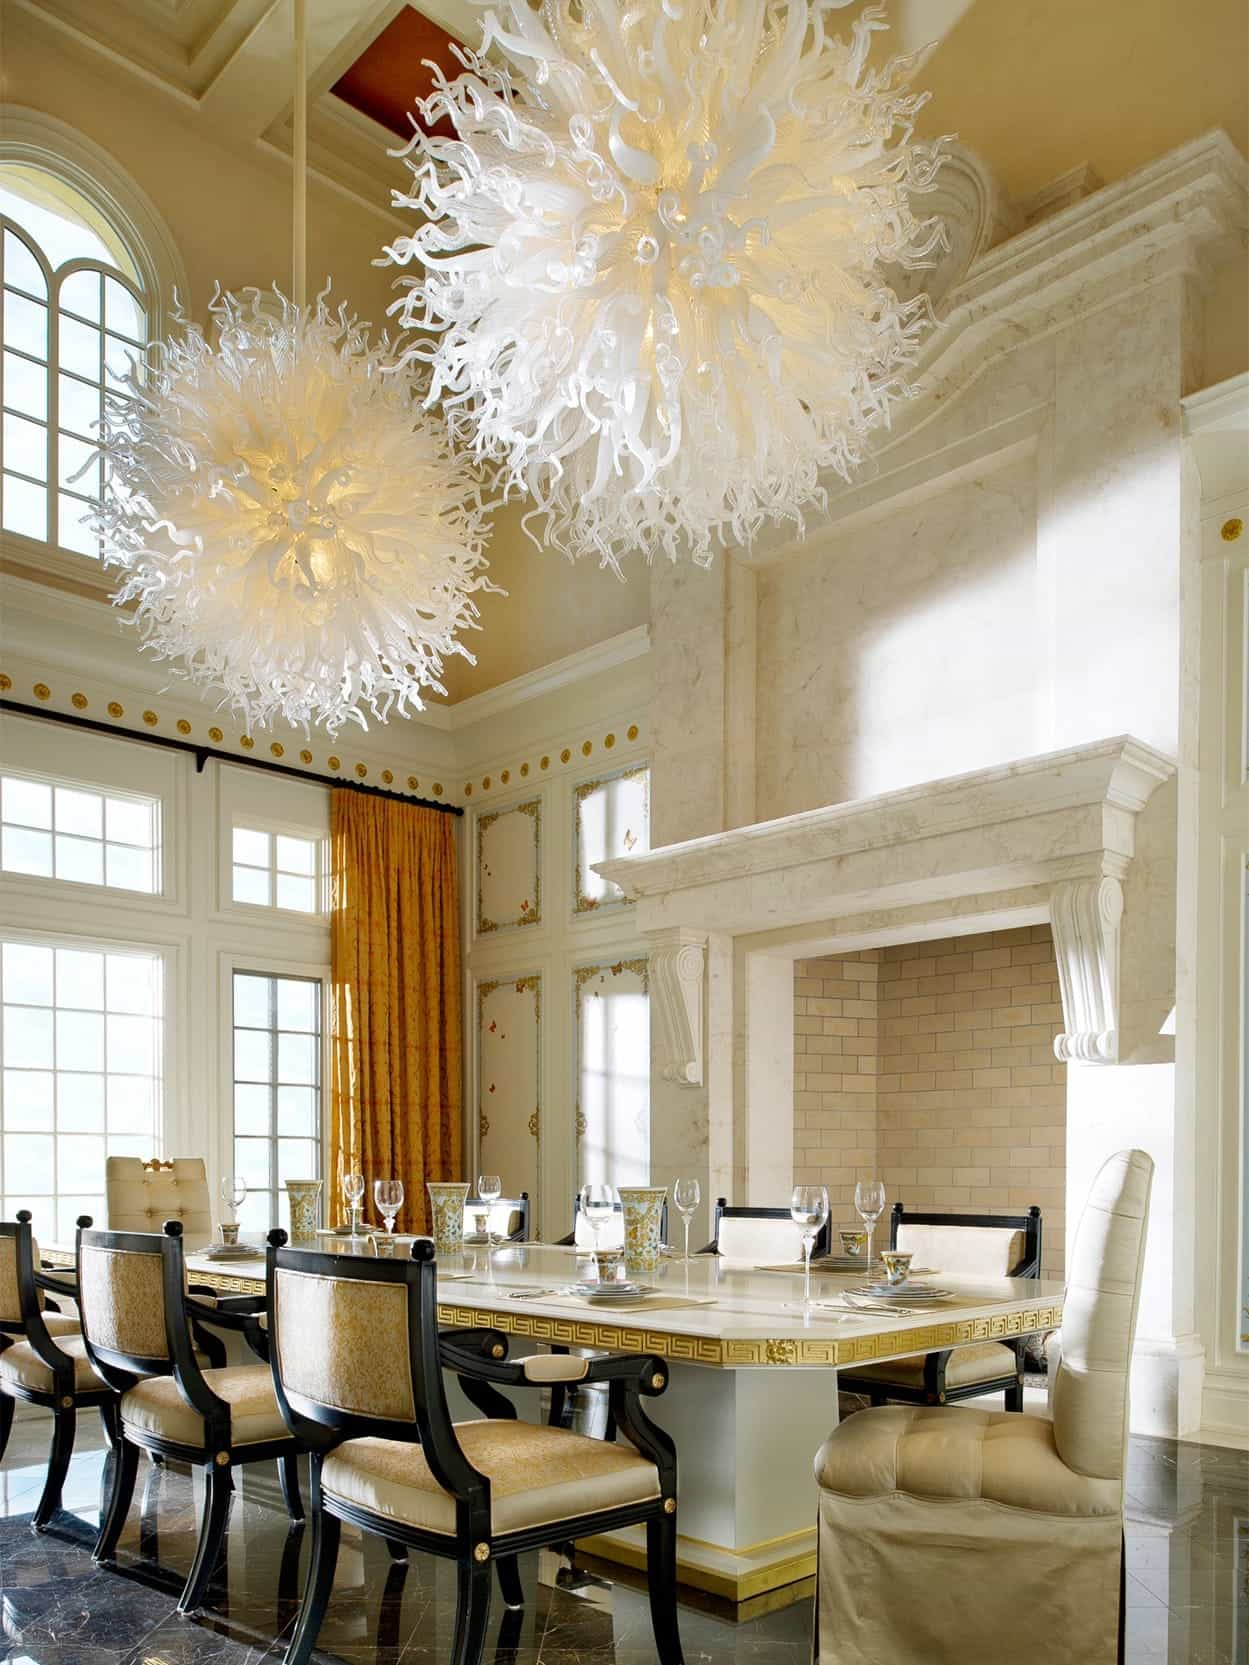 Classic Romantic Dining Room With Romantic Upholstered Chairs And Artistic Chandelier Lighting (Photo 20 of 21)